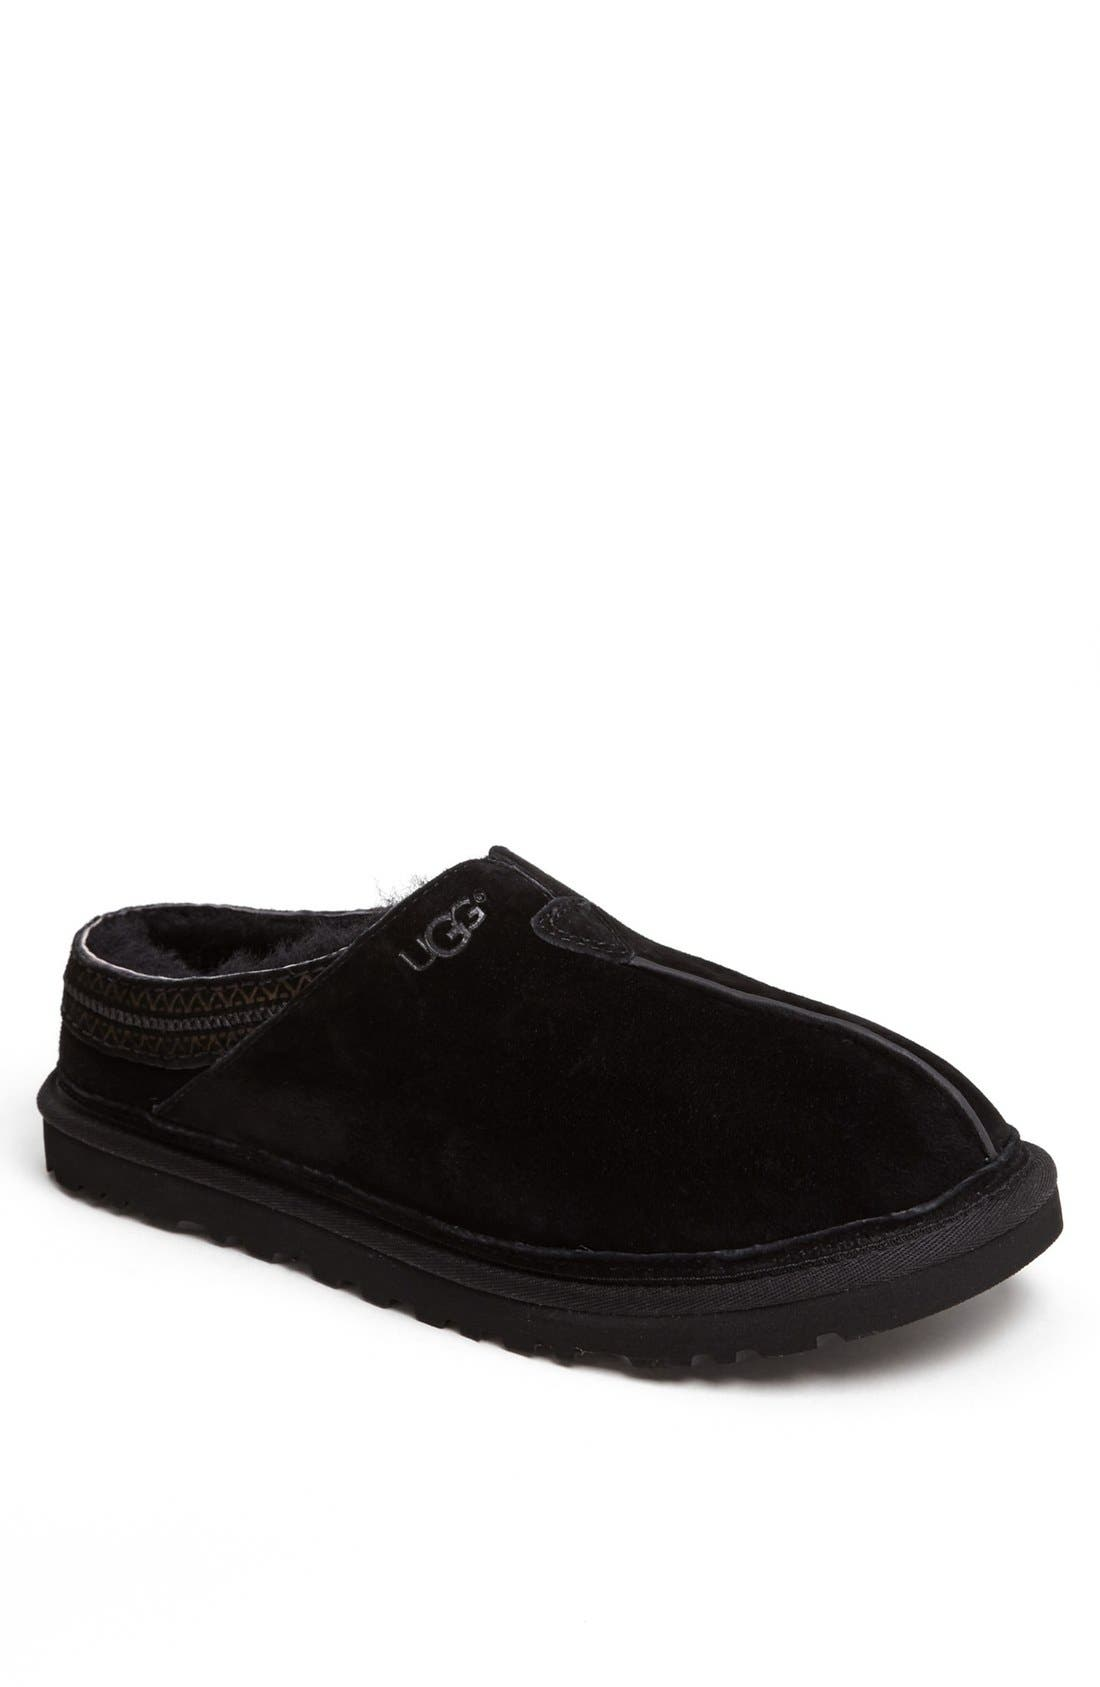 Neuman Slipper,                             Main thumbnail 1, color,                             Black